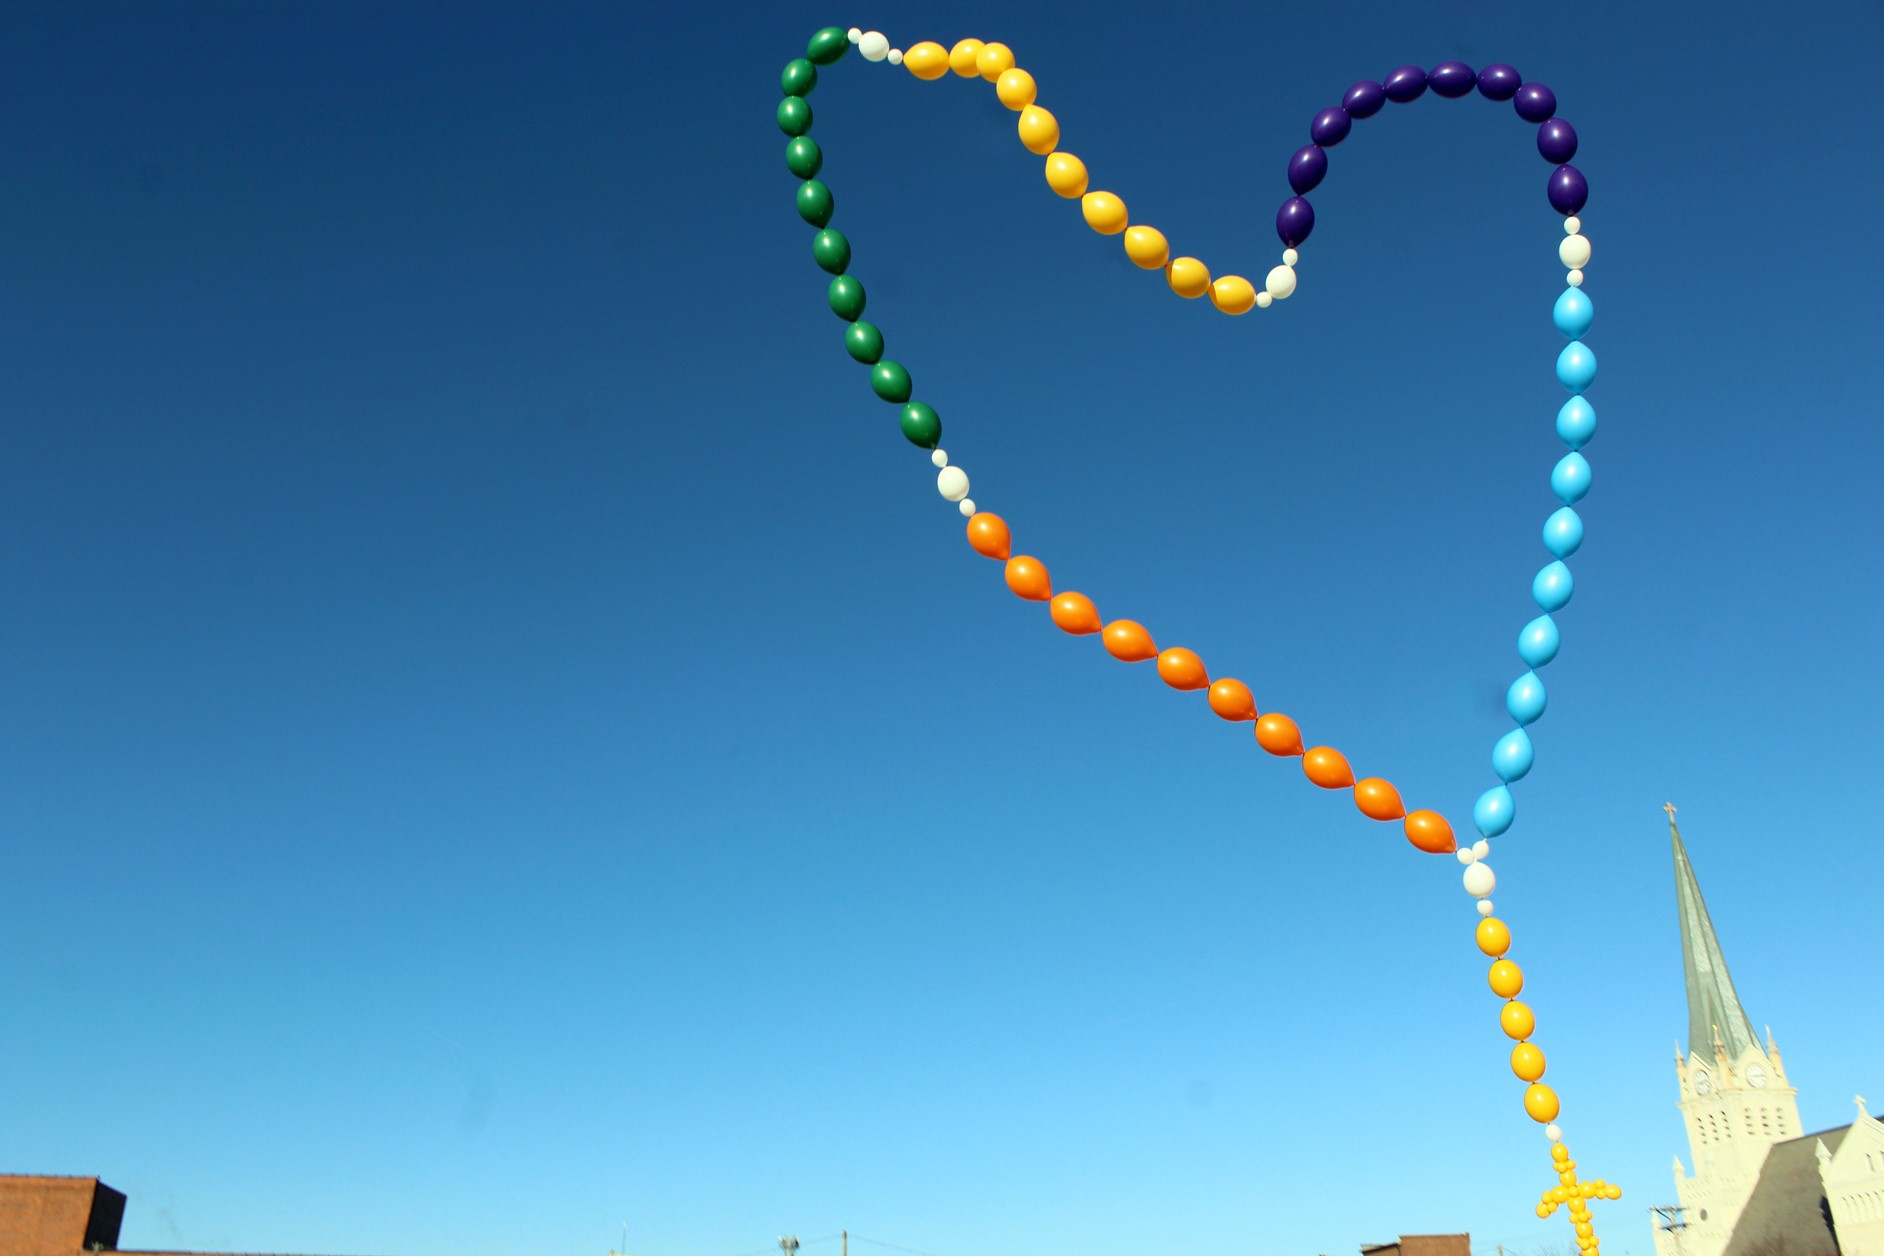 K-12 Rosary Balloon Release